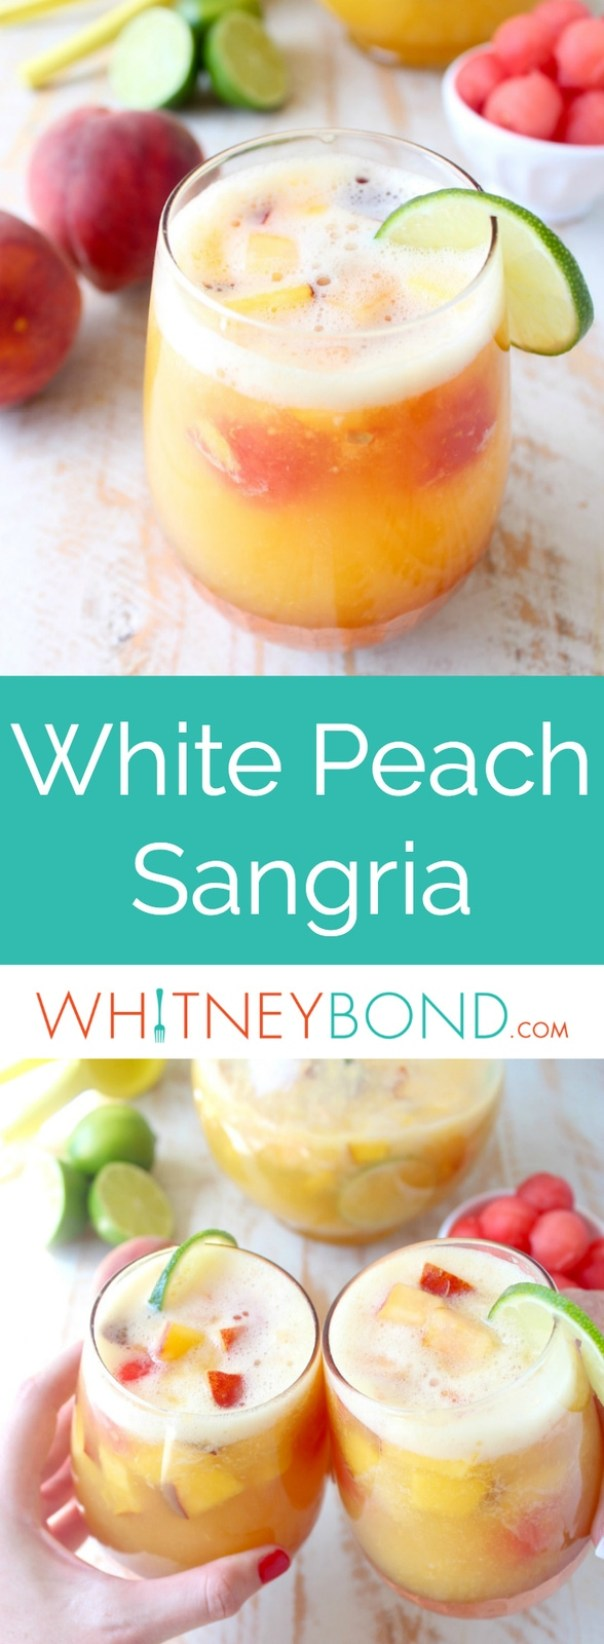 This white peach sangria is the perfect summer cocktail recipe combining refreshing white wine with fresh peaches, nectarines and lime juice!